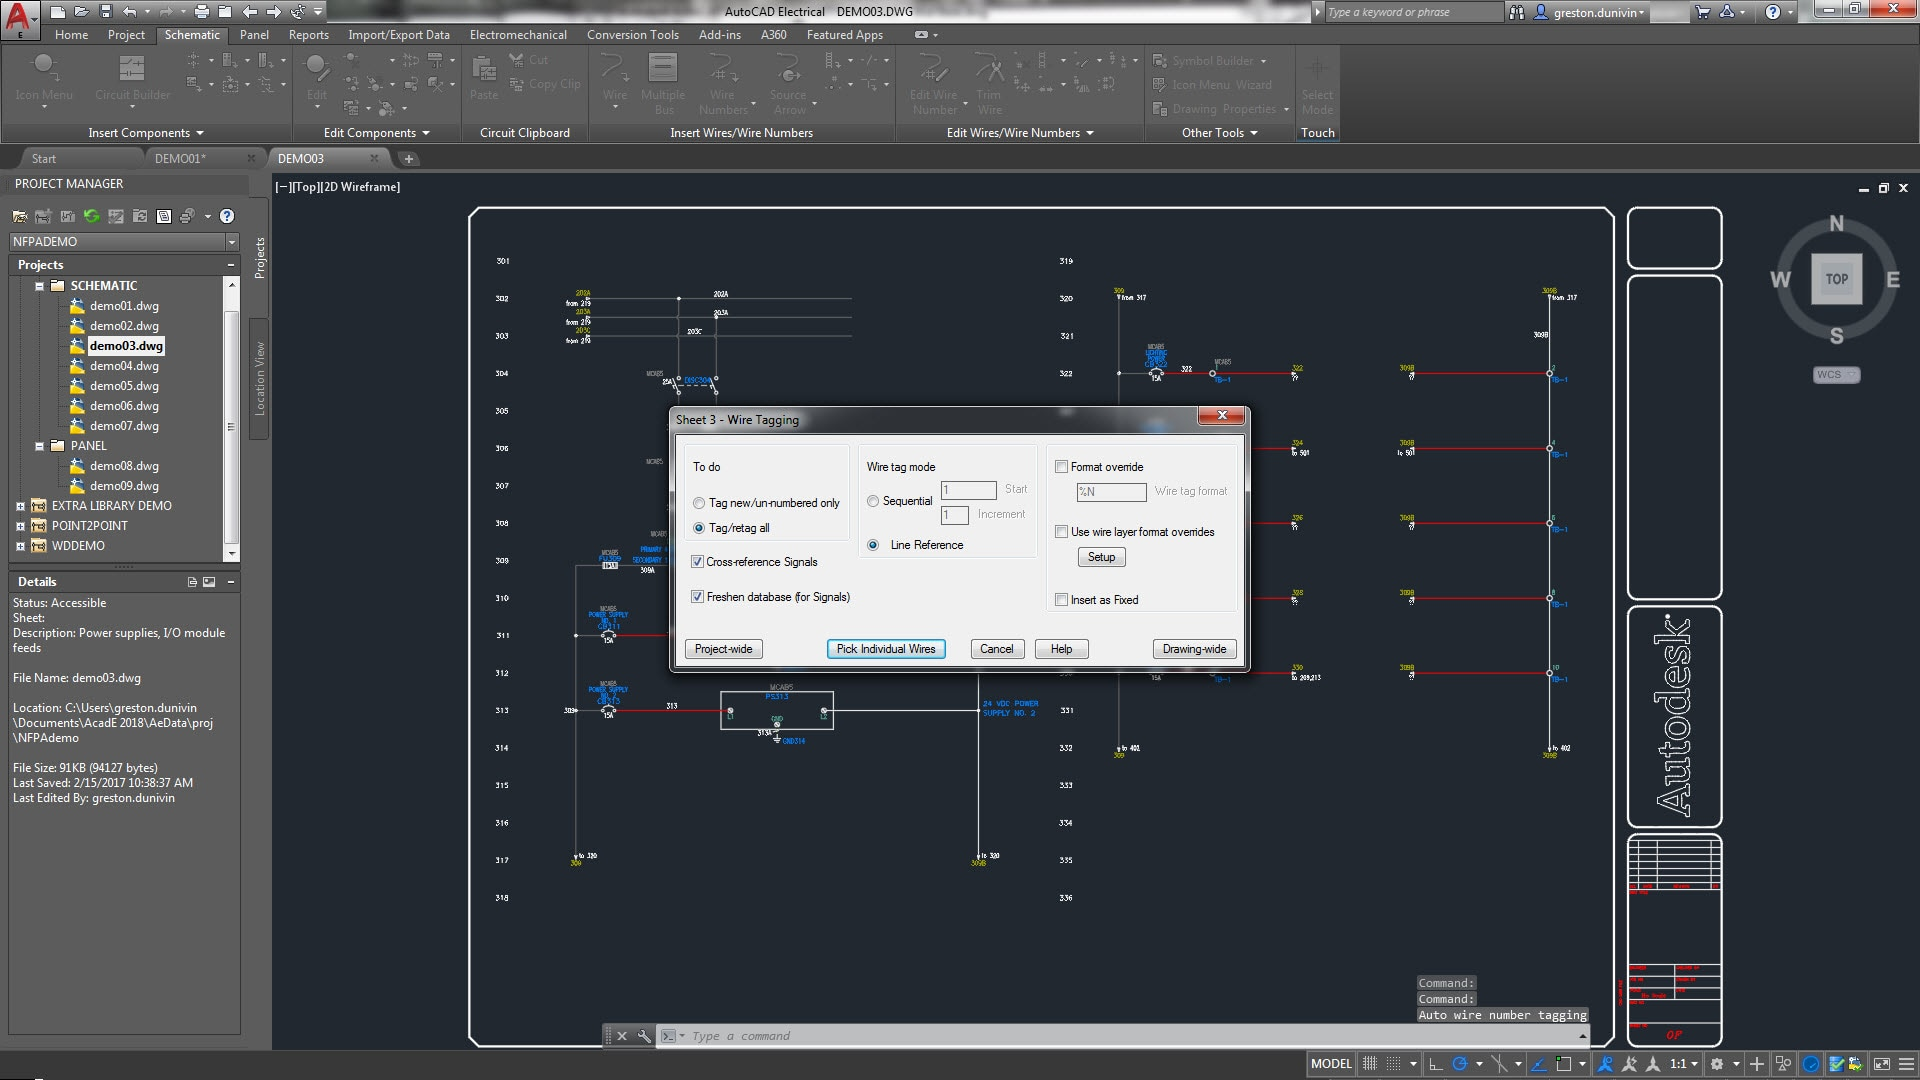 Autocad Electrical Toolset Design Software Practice Wiring Diagrams Schematic